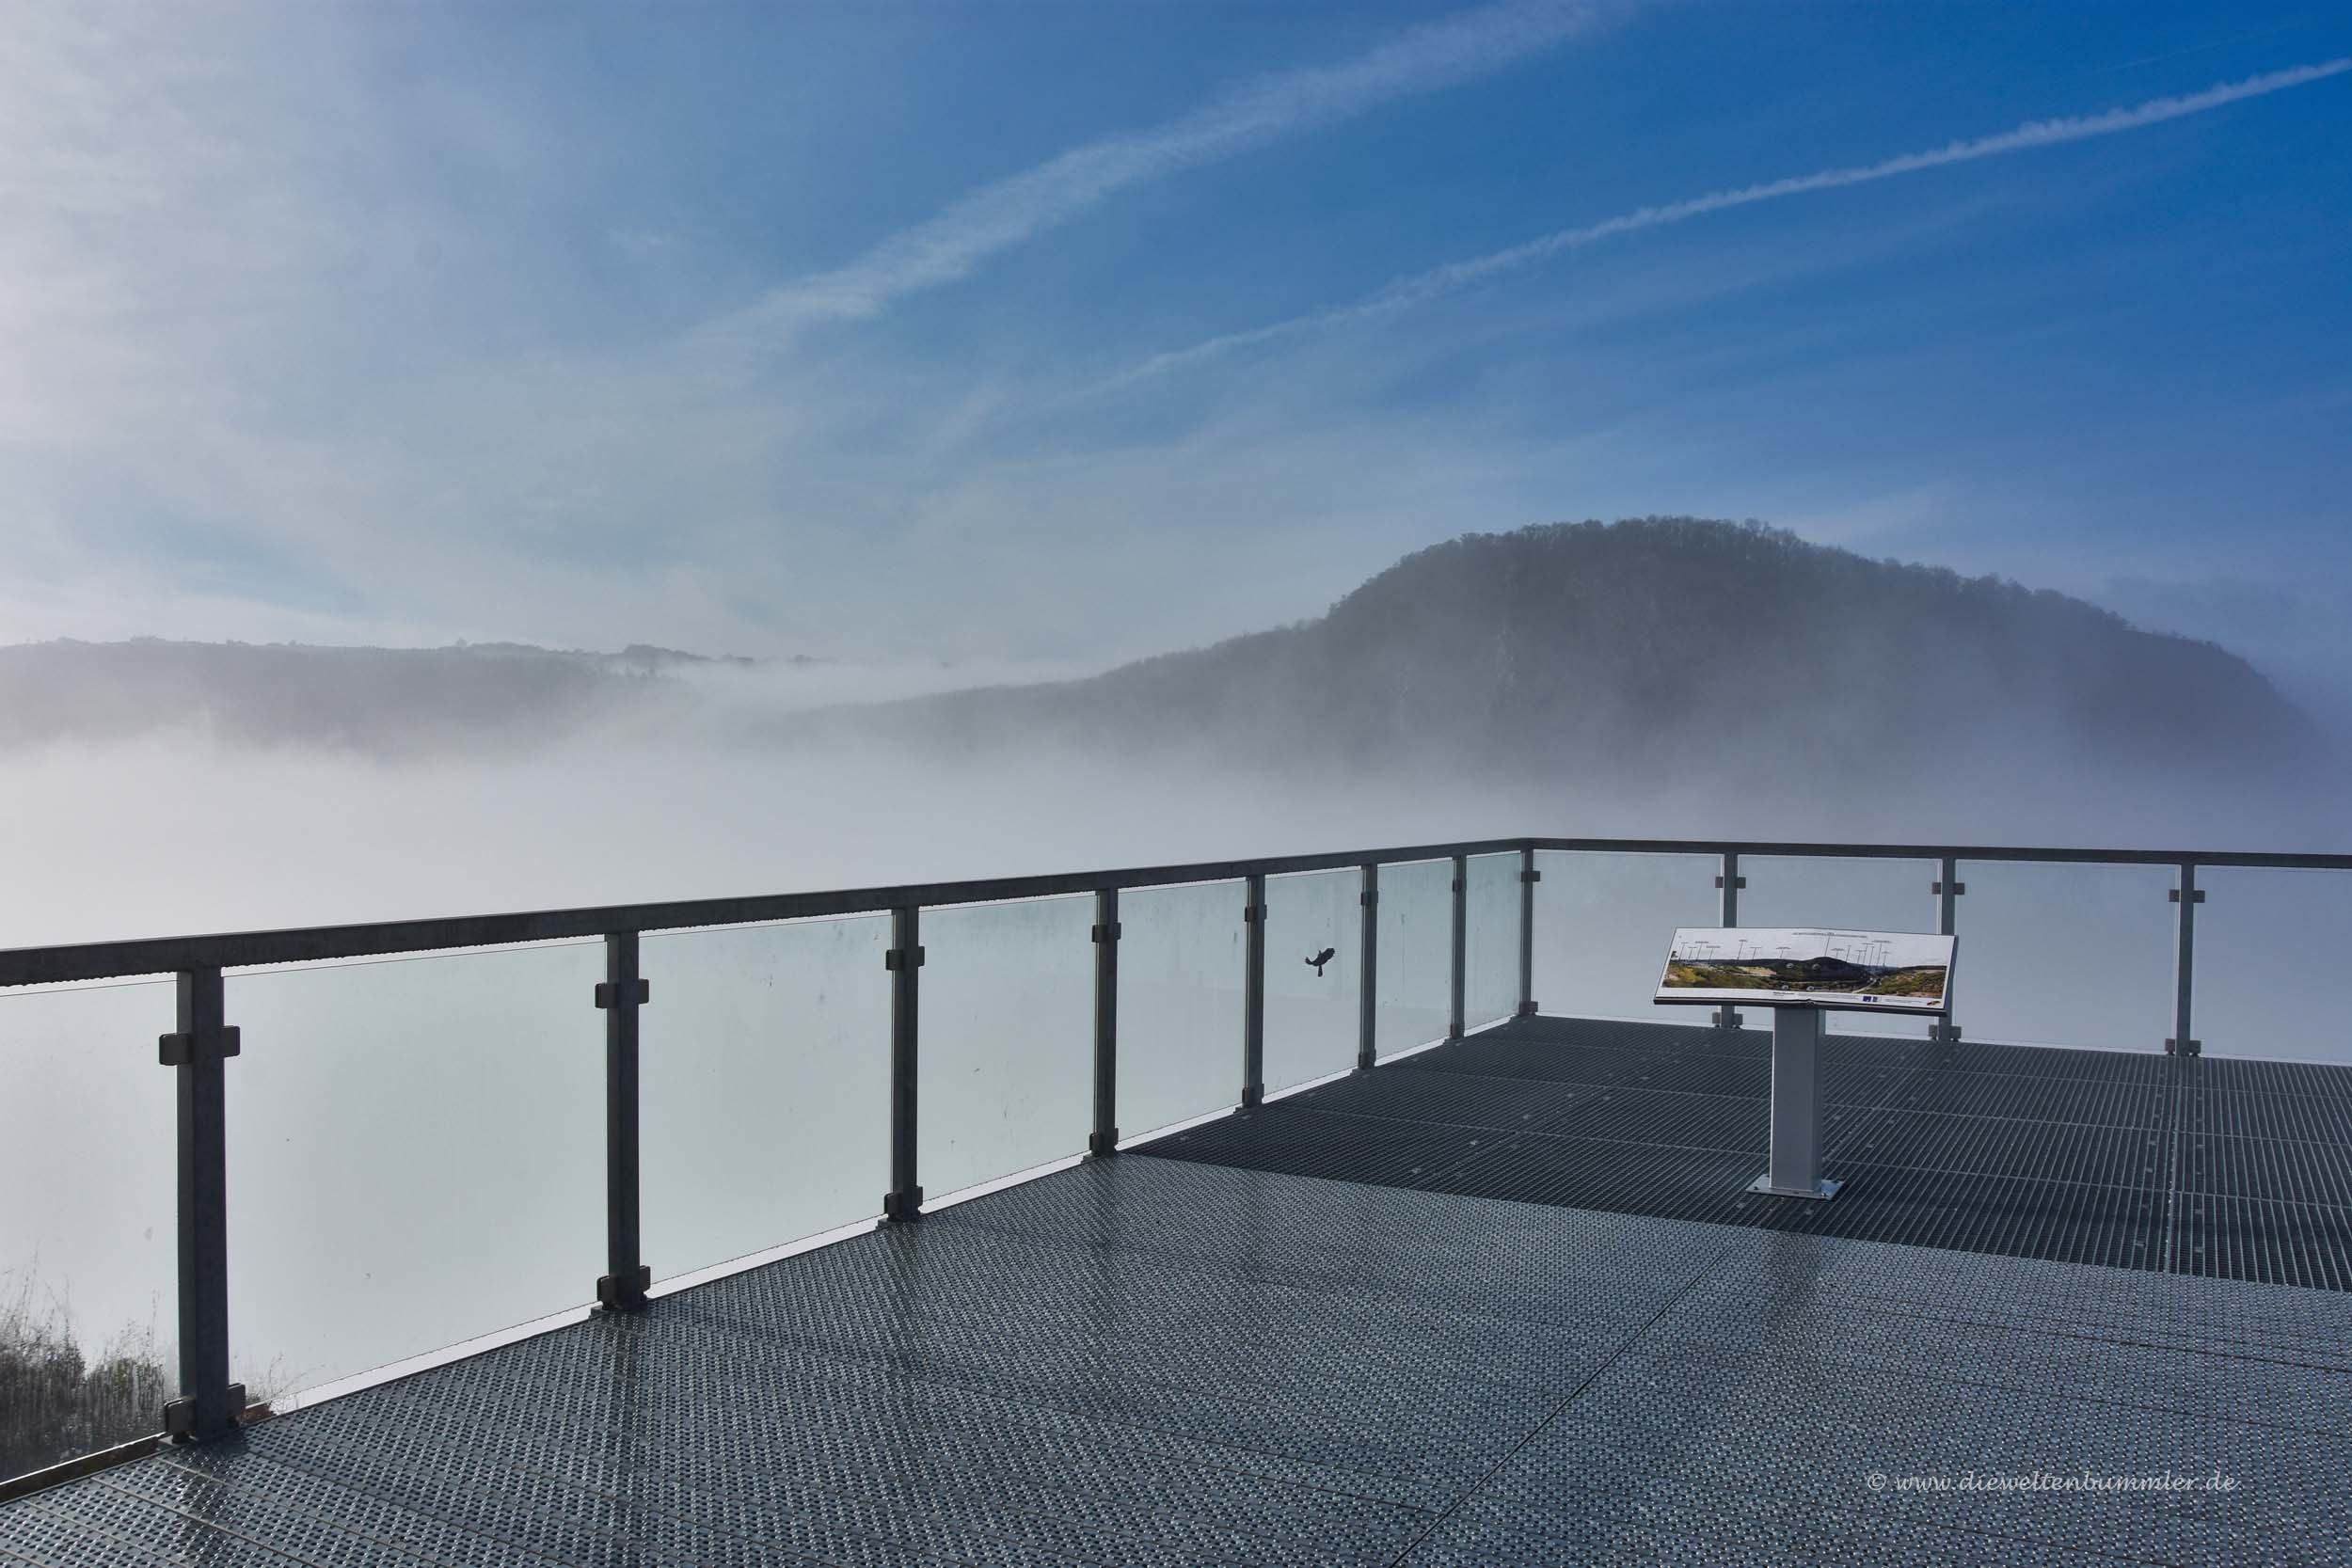 Nebel am Nahe-Skywalk